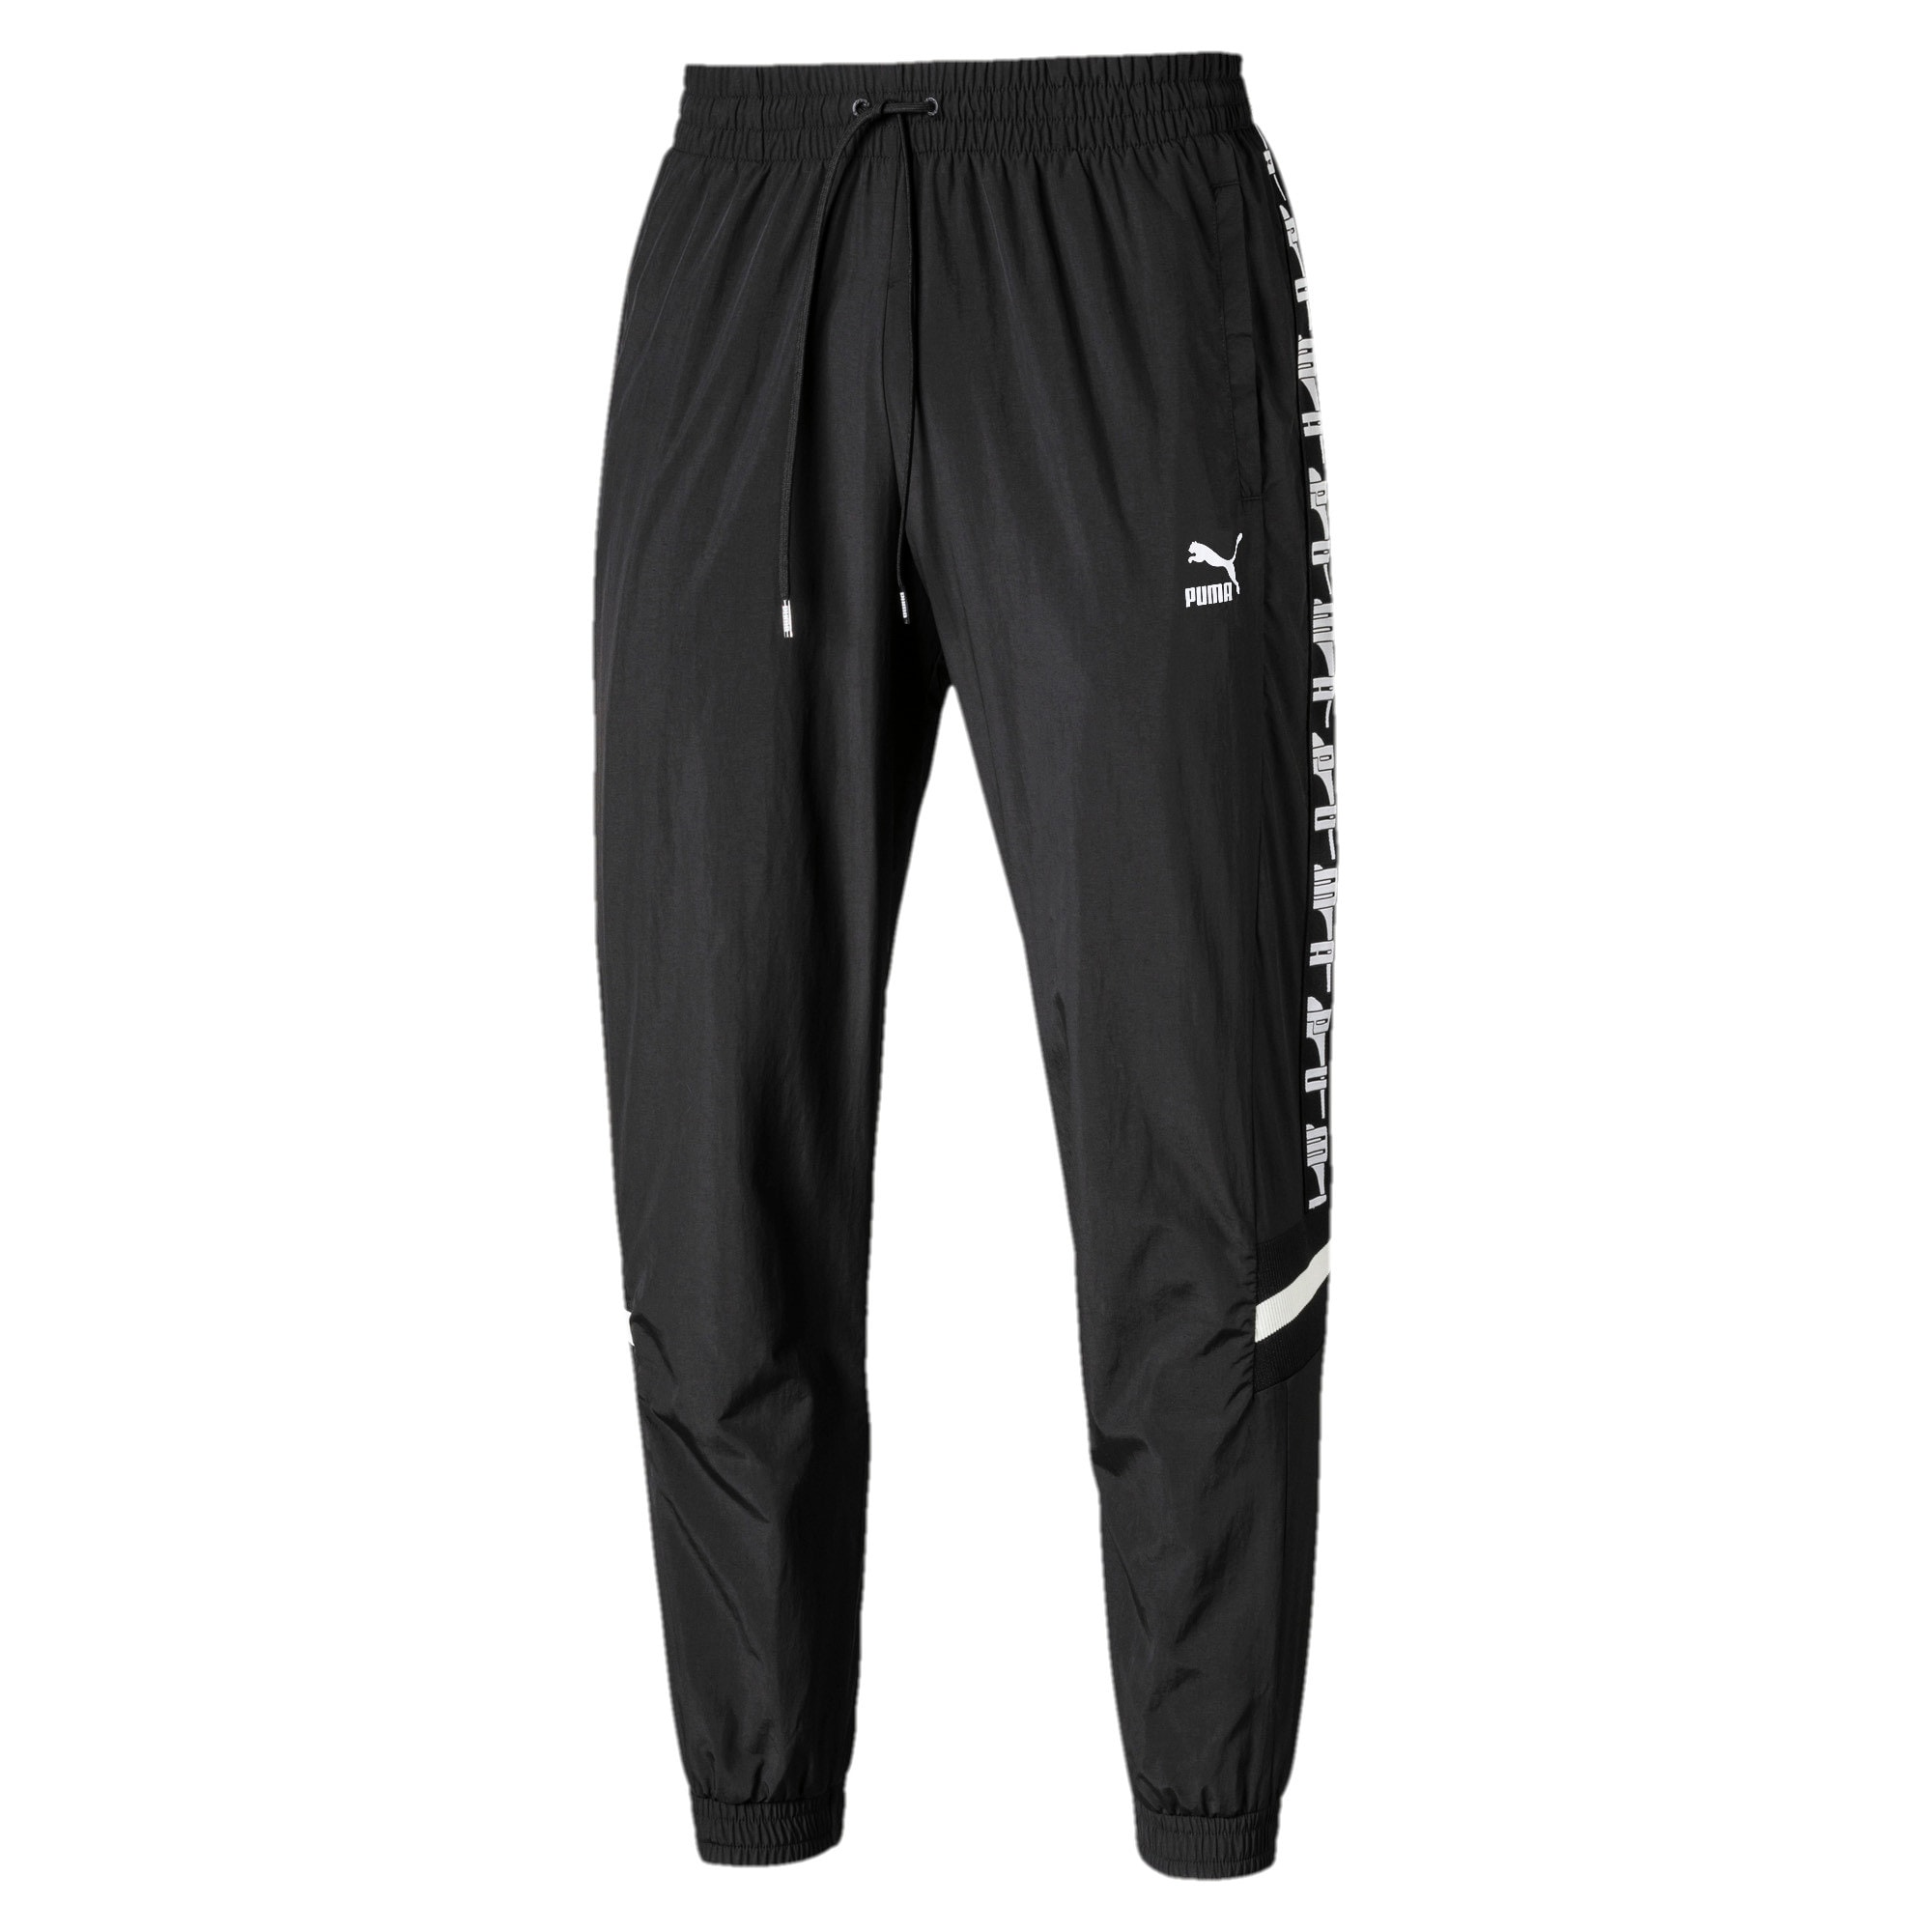 Thumbnail 4 of PUMA XTG Woven Men's Pants, Puma Black, medium